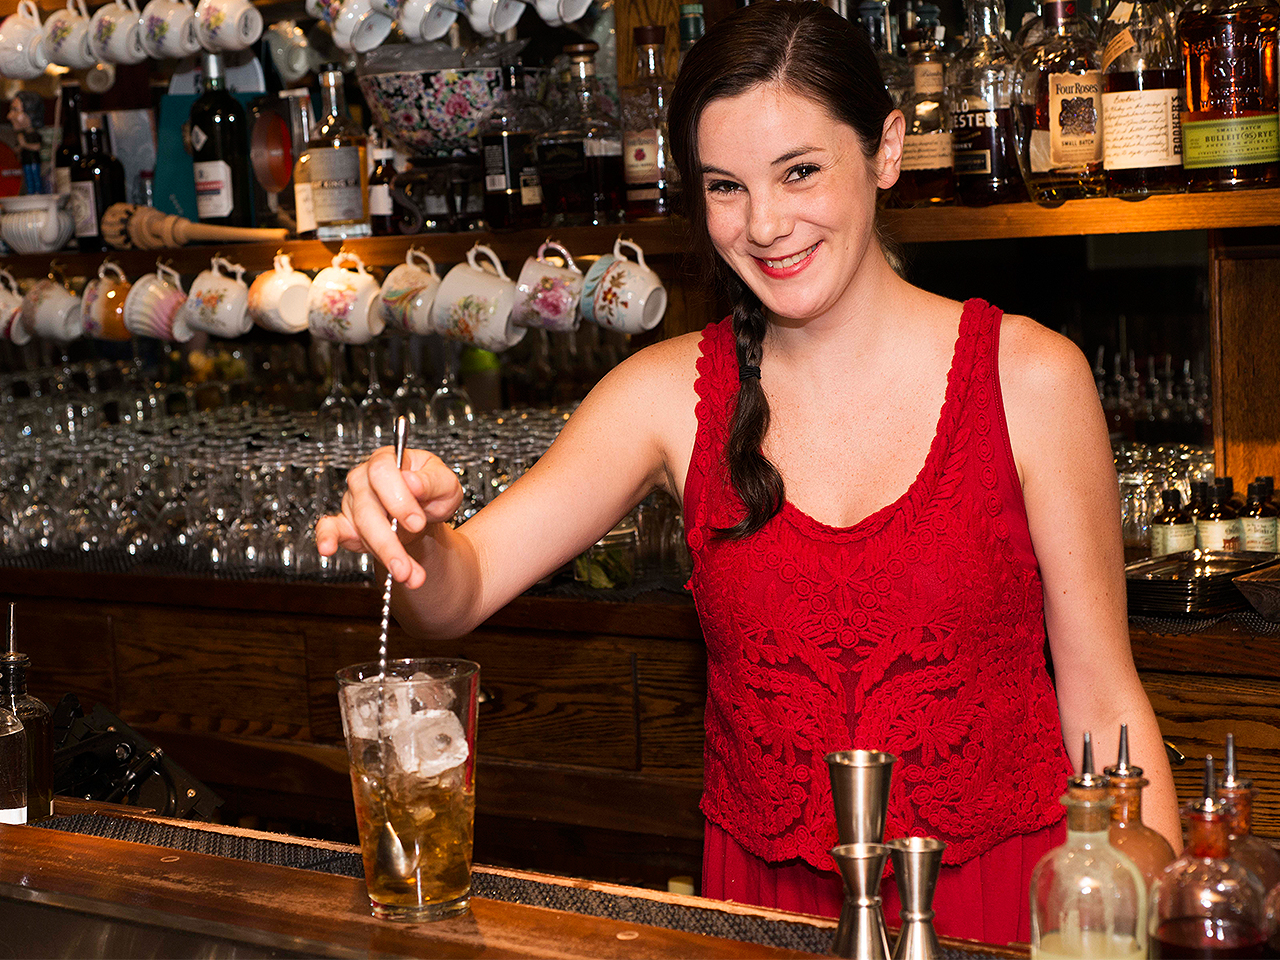 Jillian Vose: Beverage Director of The Dead Rabbit & BlackTail, NYC